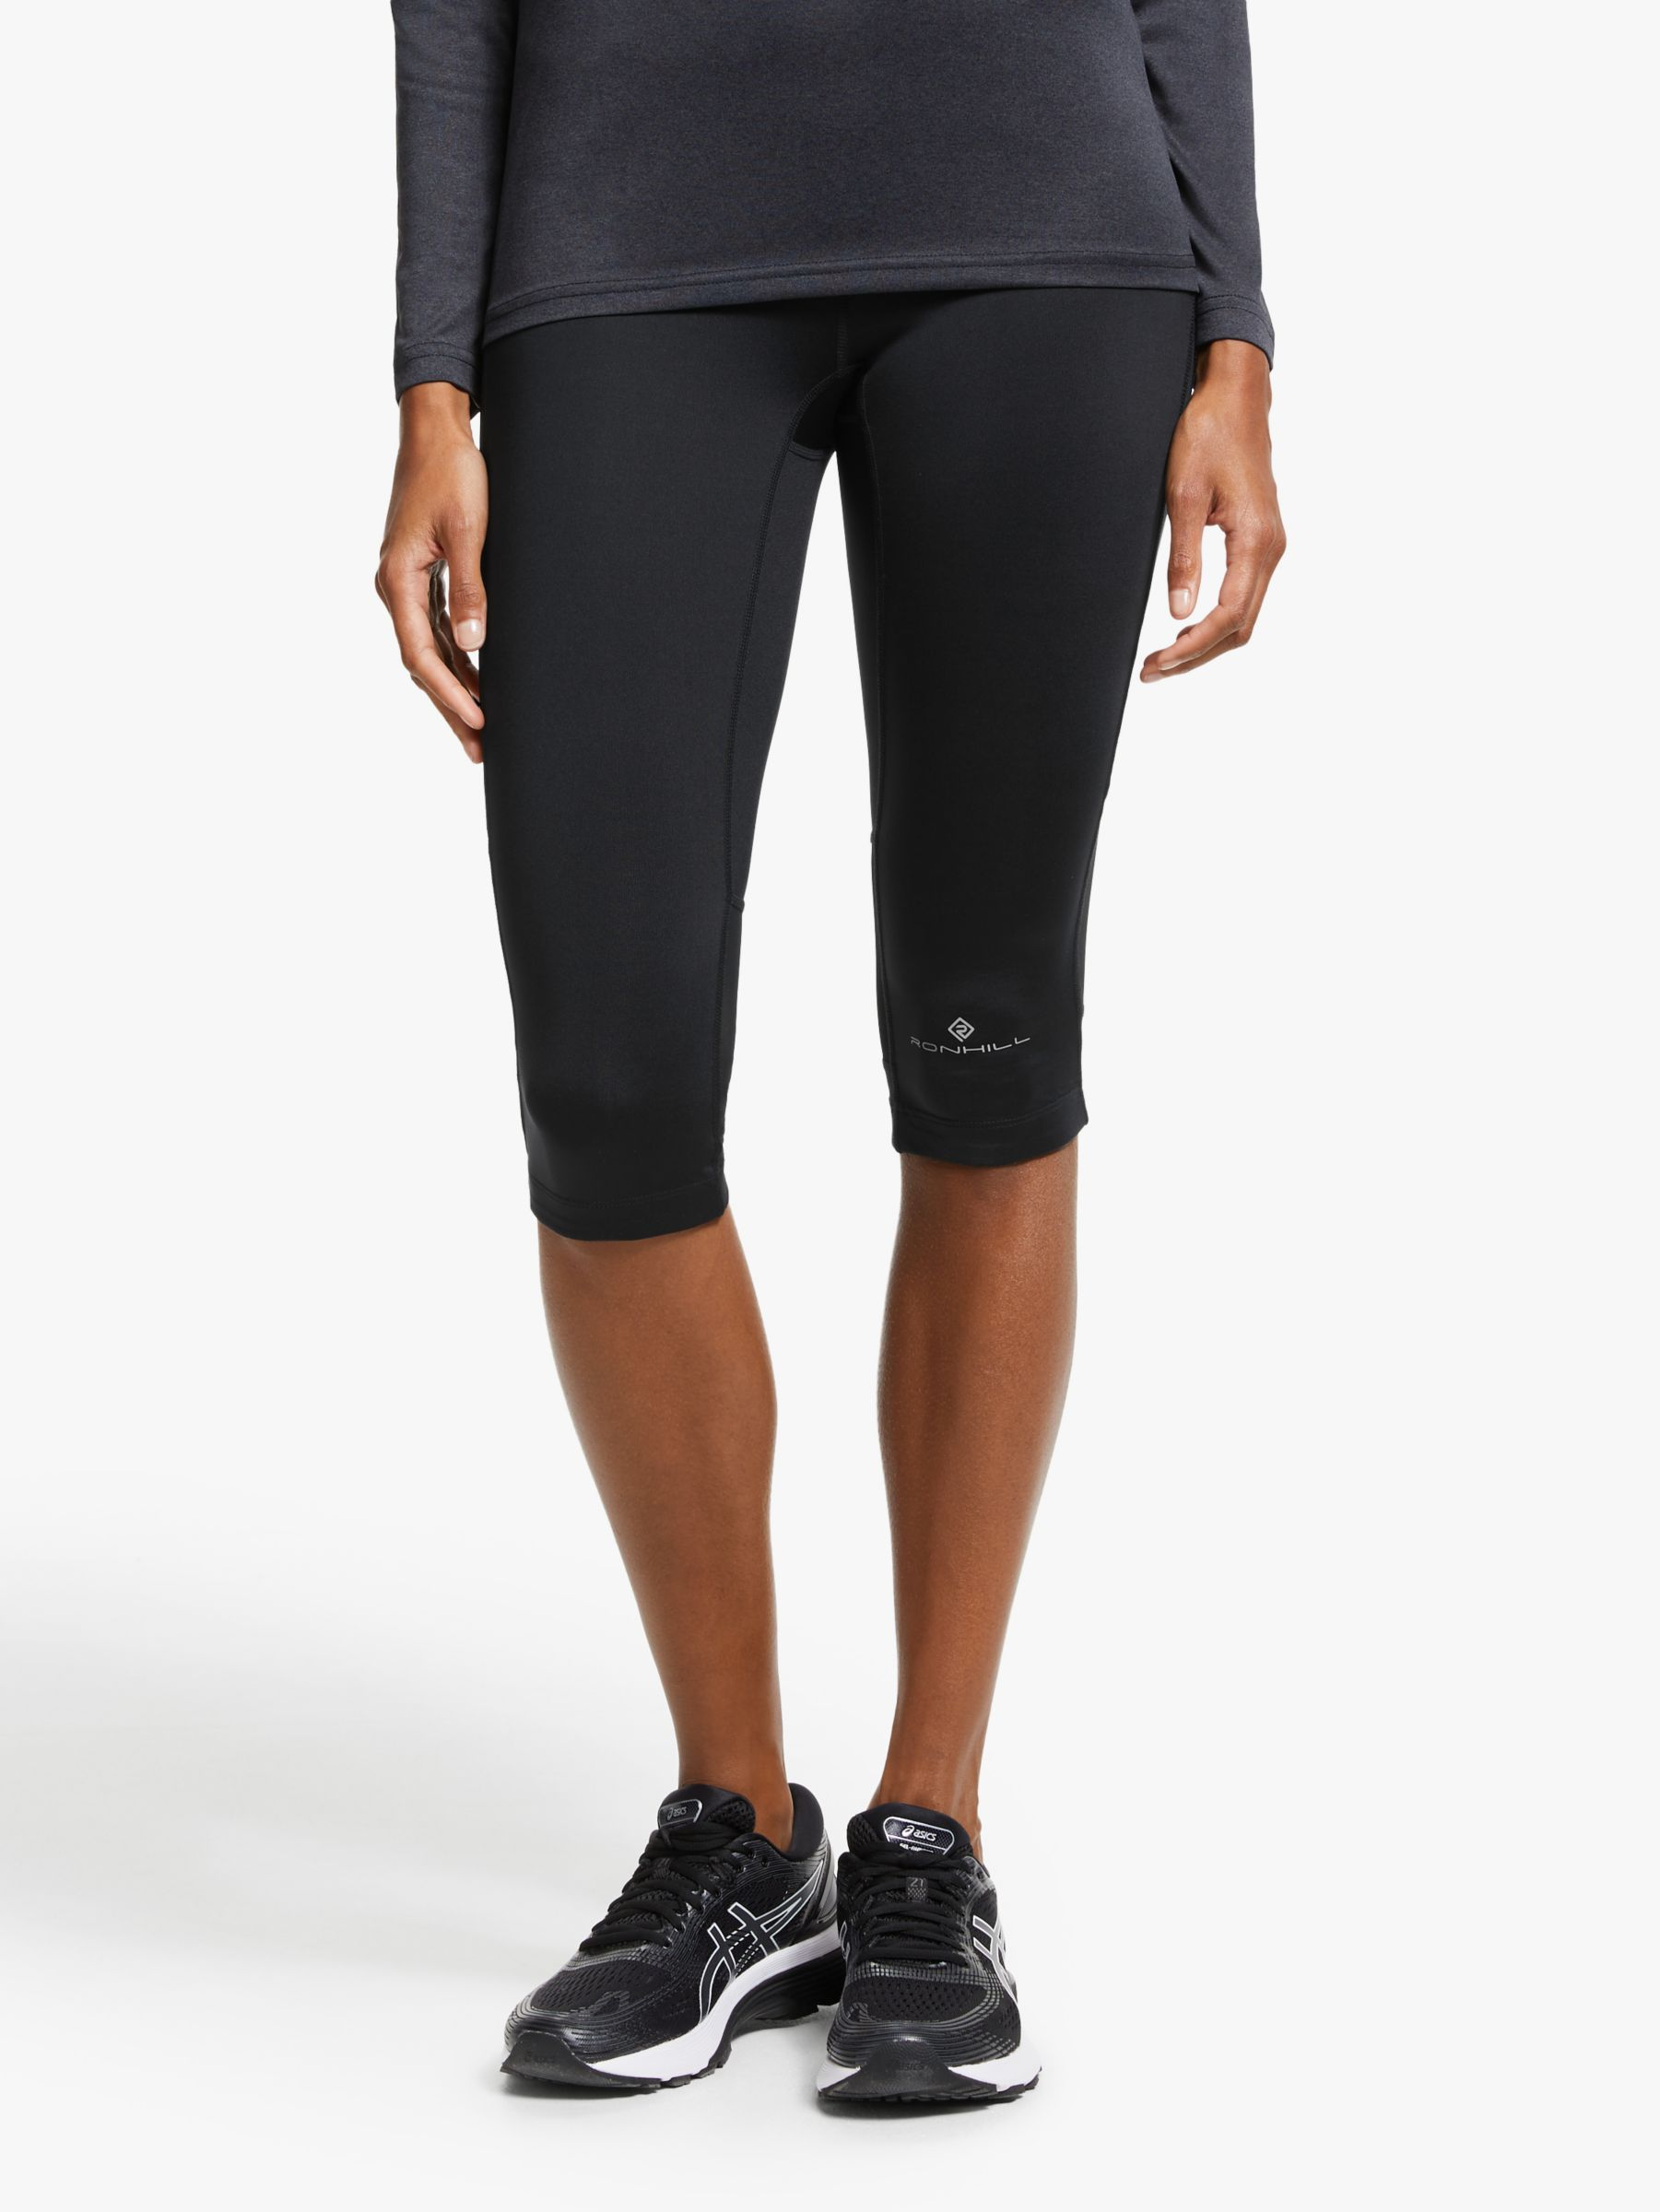 Ronhill Ronhill Stride Stretch Capri Running Tights, All Black